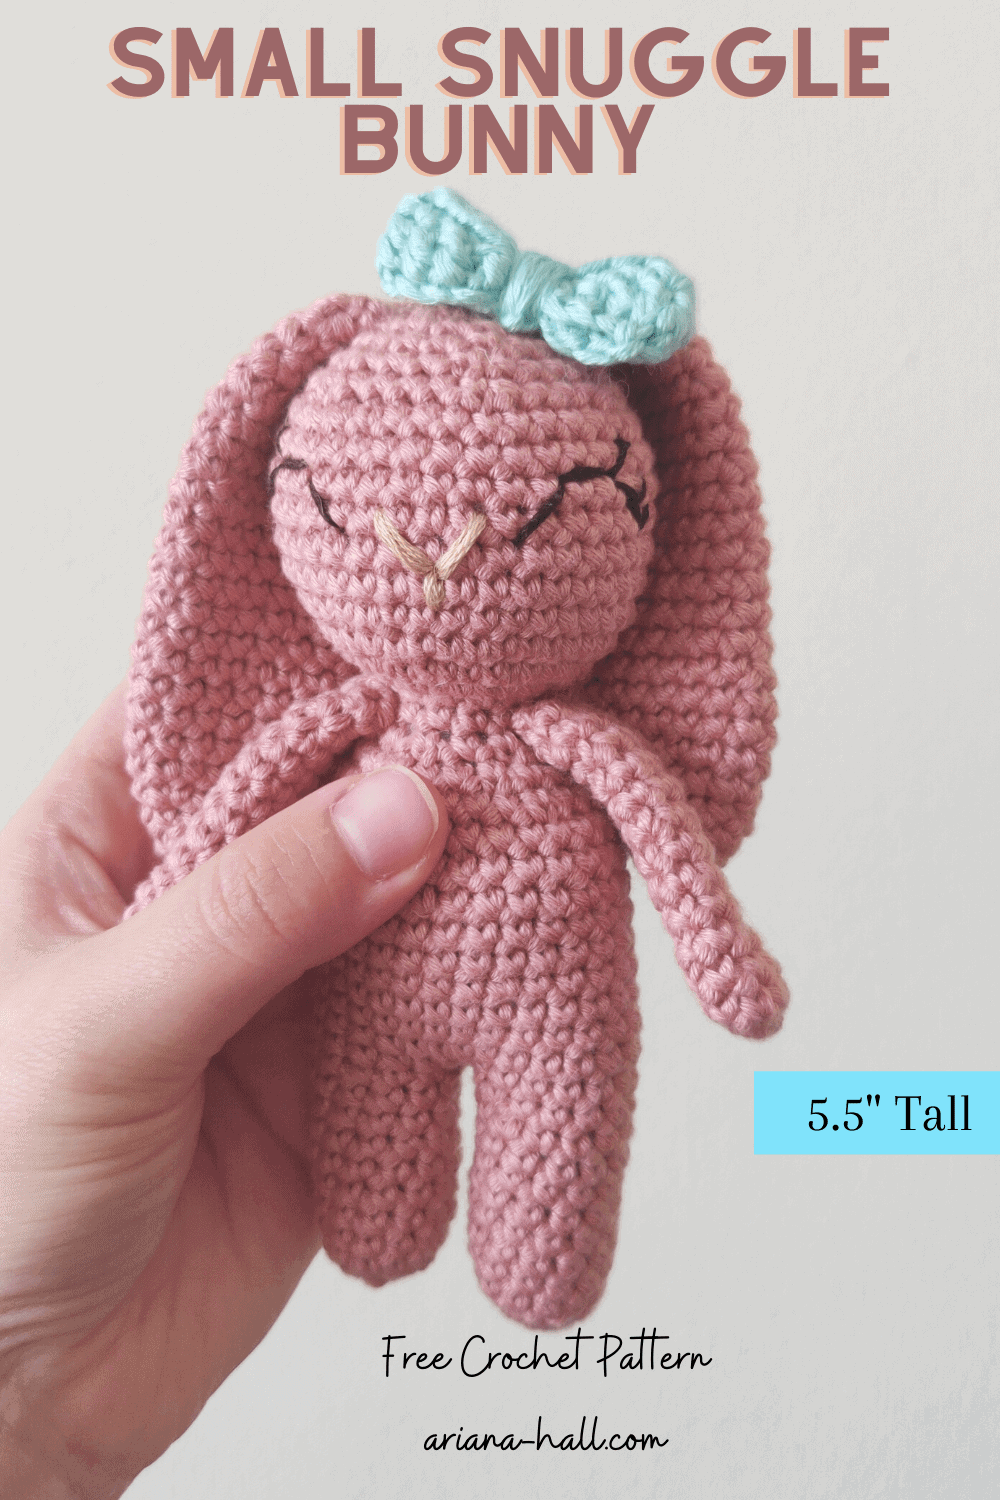 advertisement for small snuggle bunny pattern.